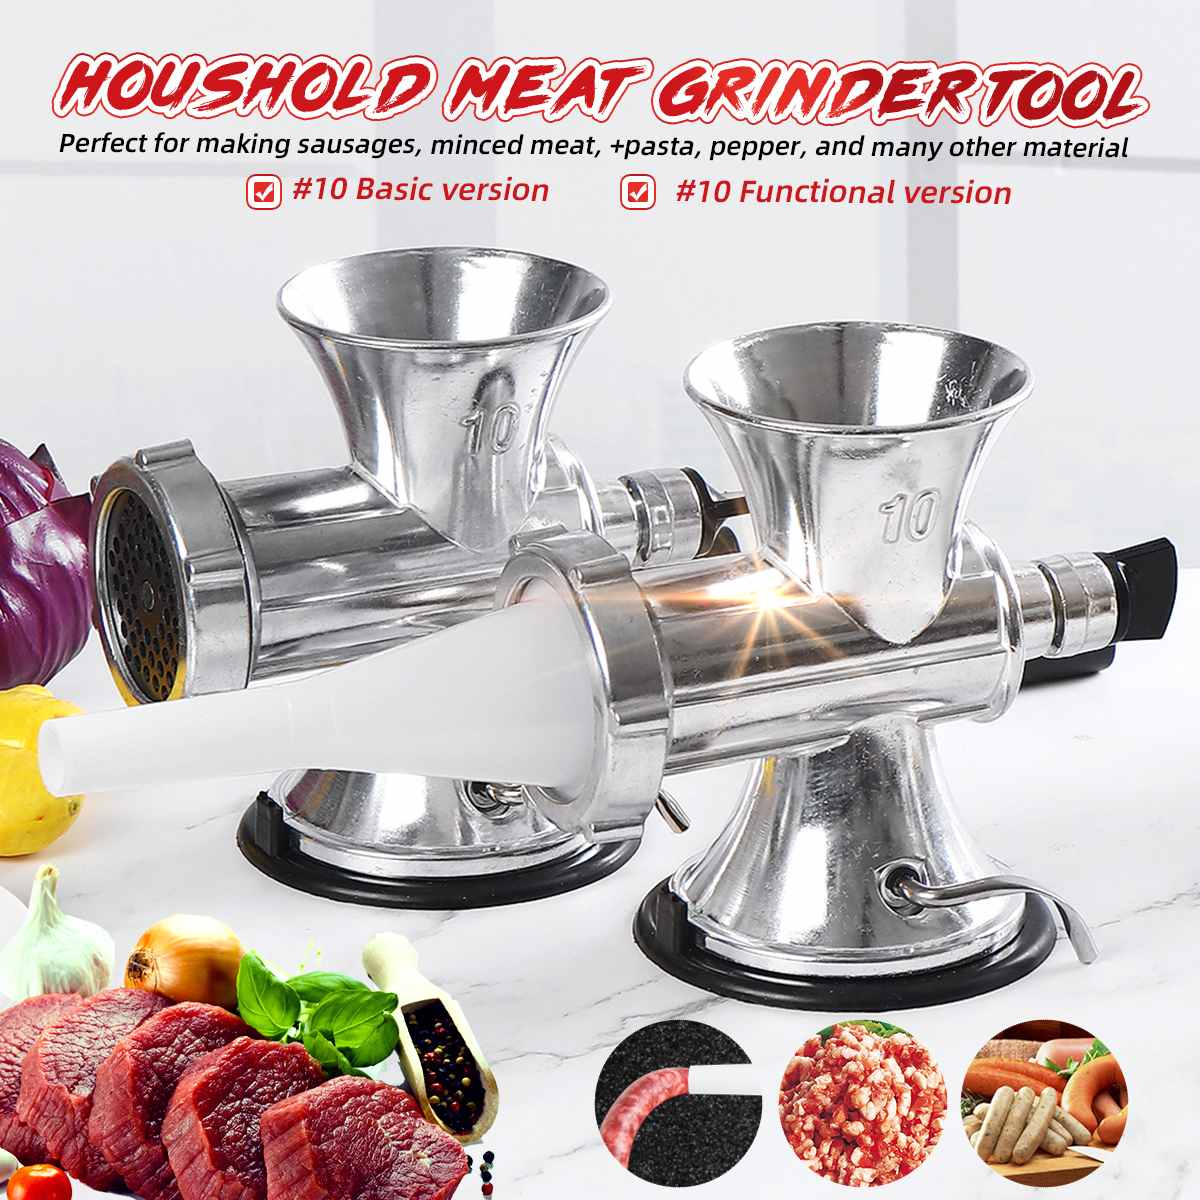 Household Hand Manual Meat Grinder Mincer Pasta Sausage Maker Machine Cooking Tools Kitchen Manual Food Processor Chopper Gadget